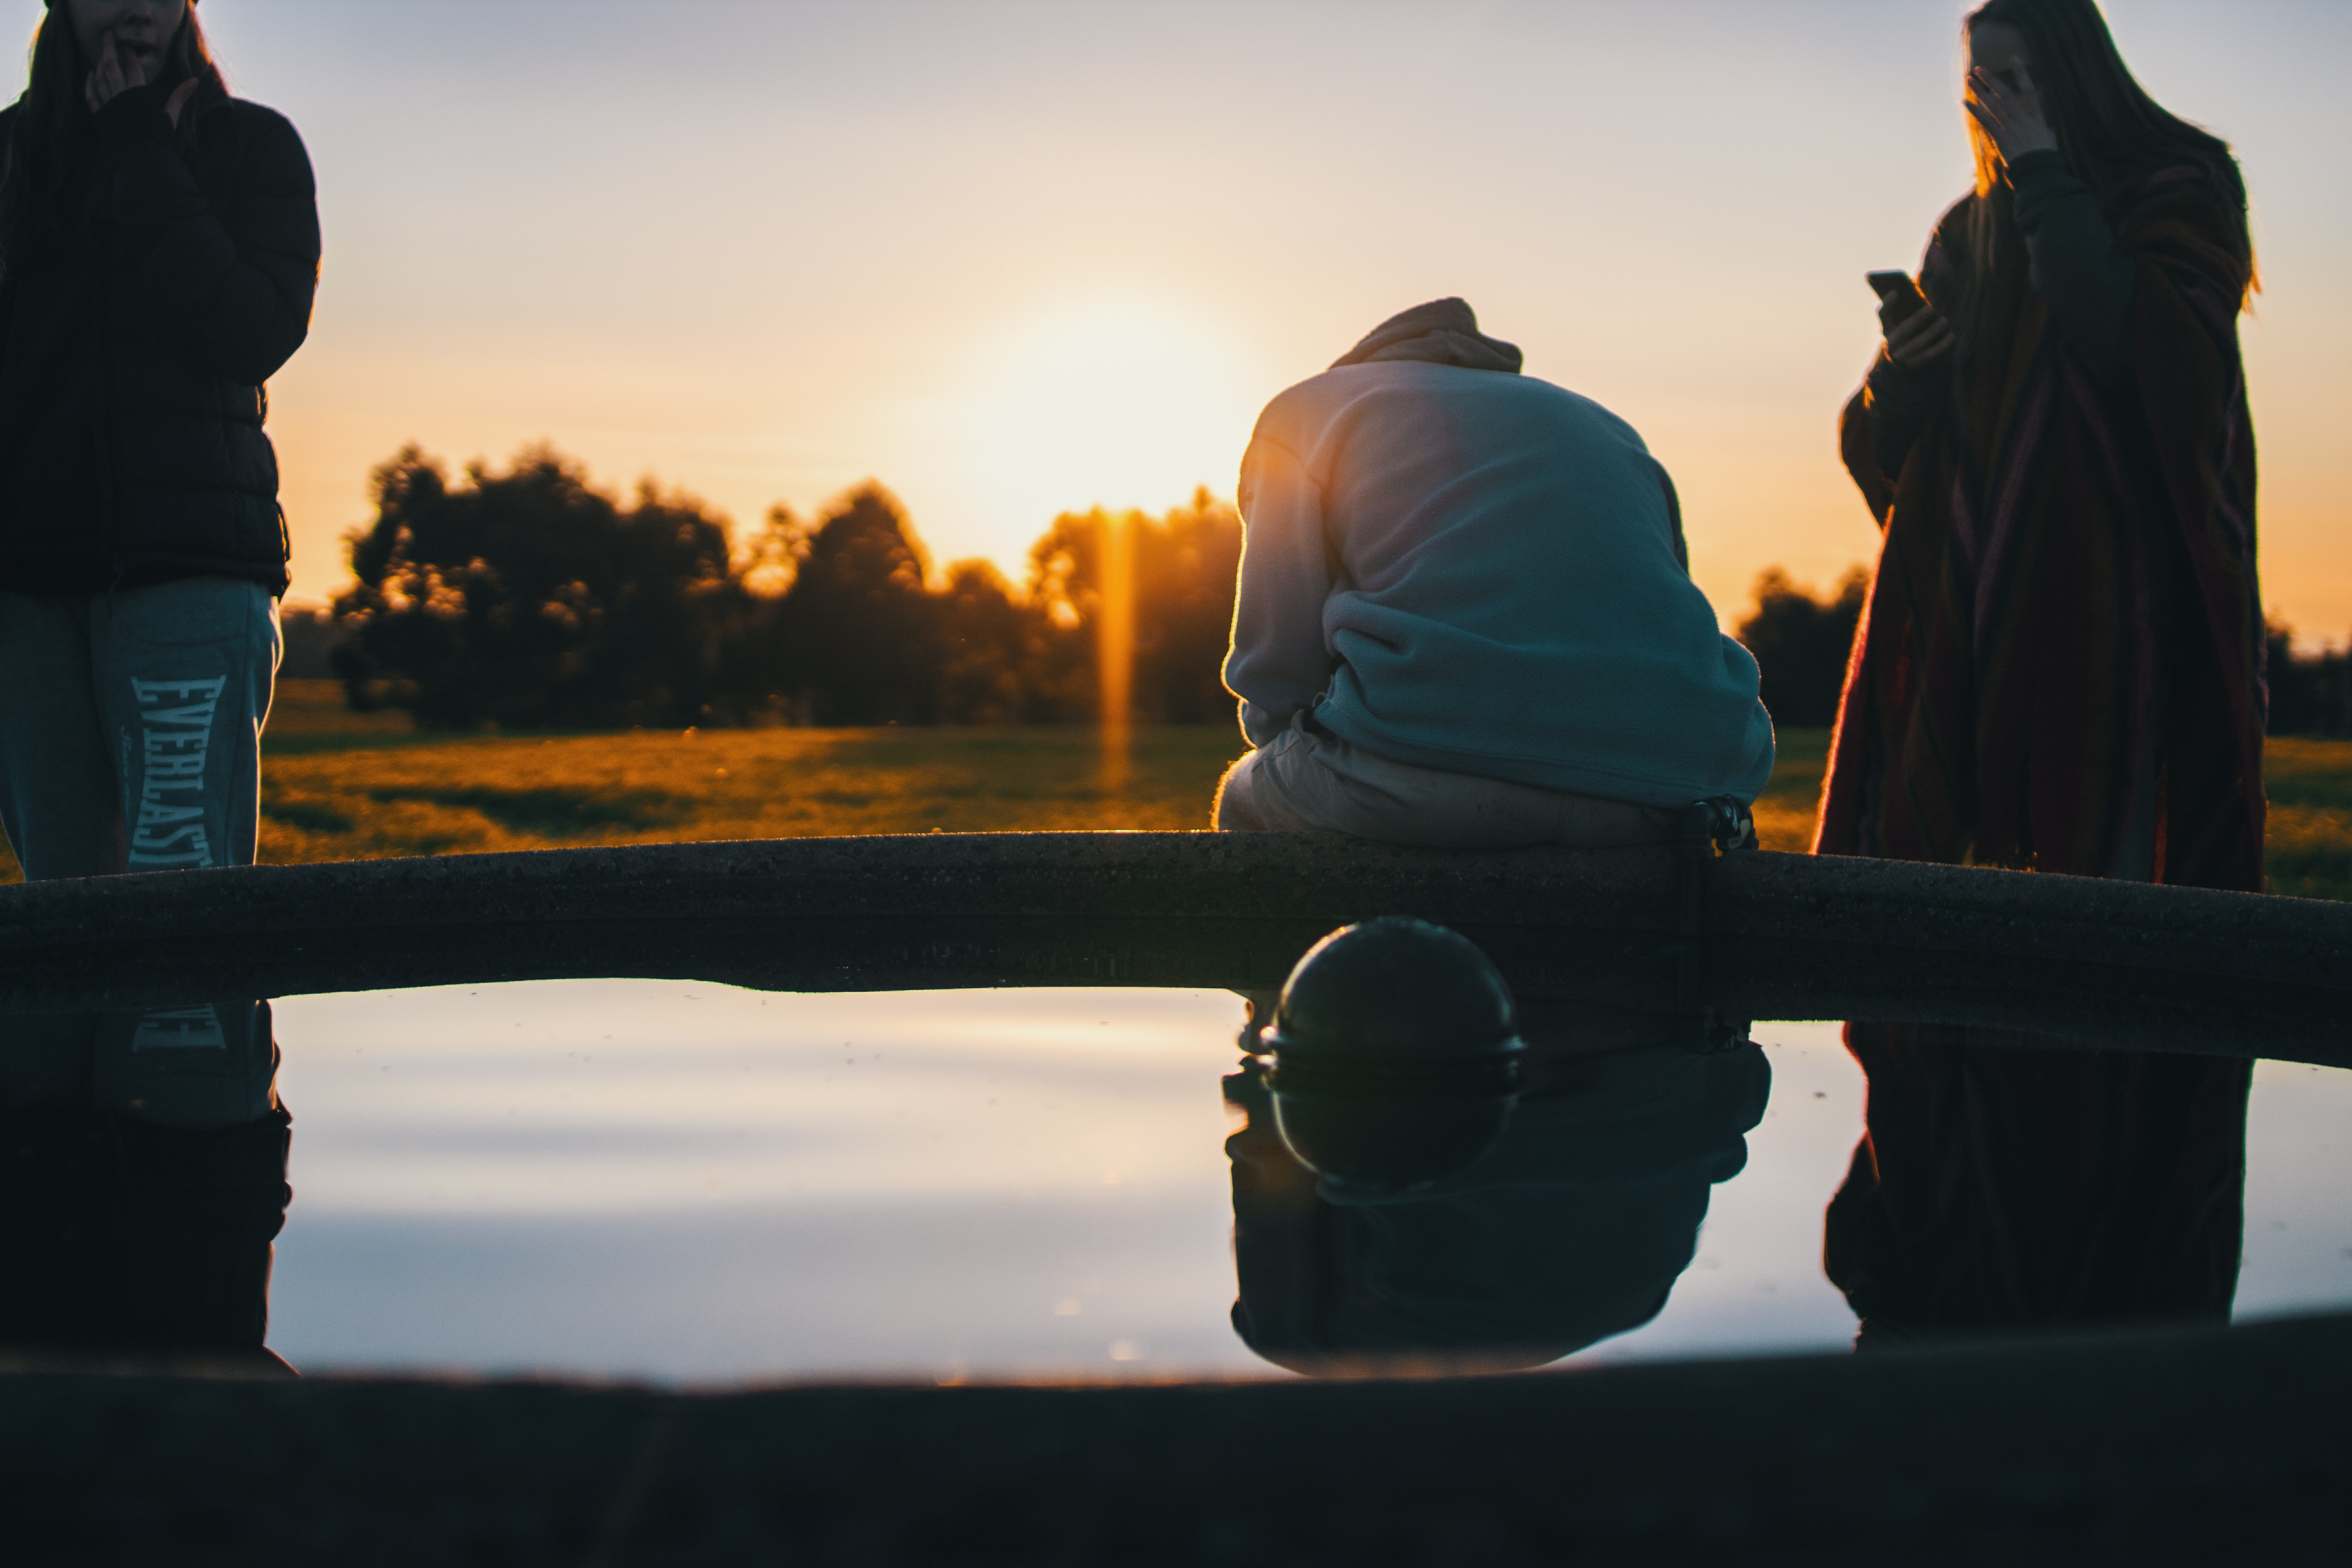 Friends sit near a reflection pond in the country at sunset